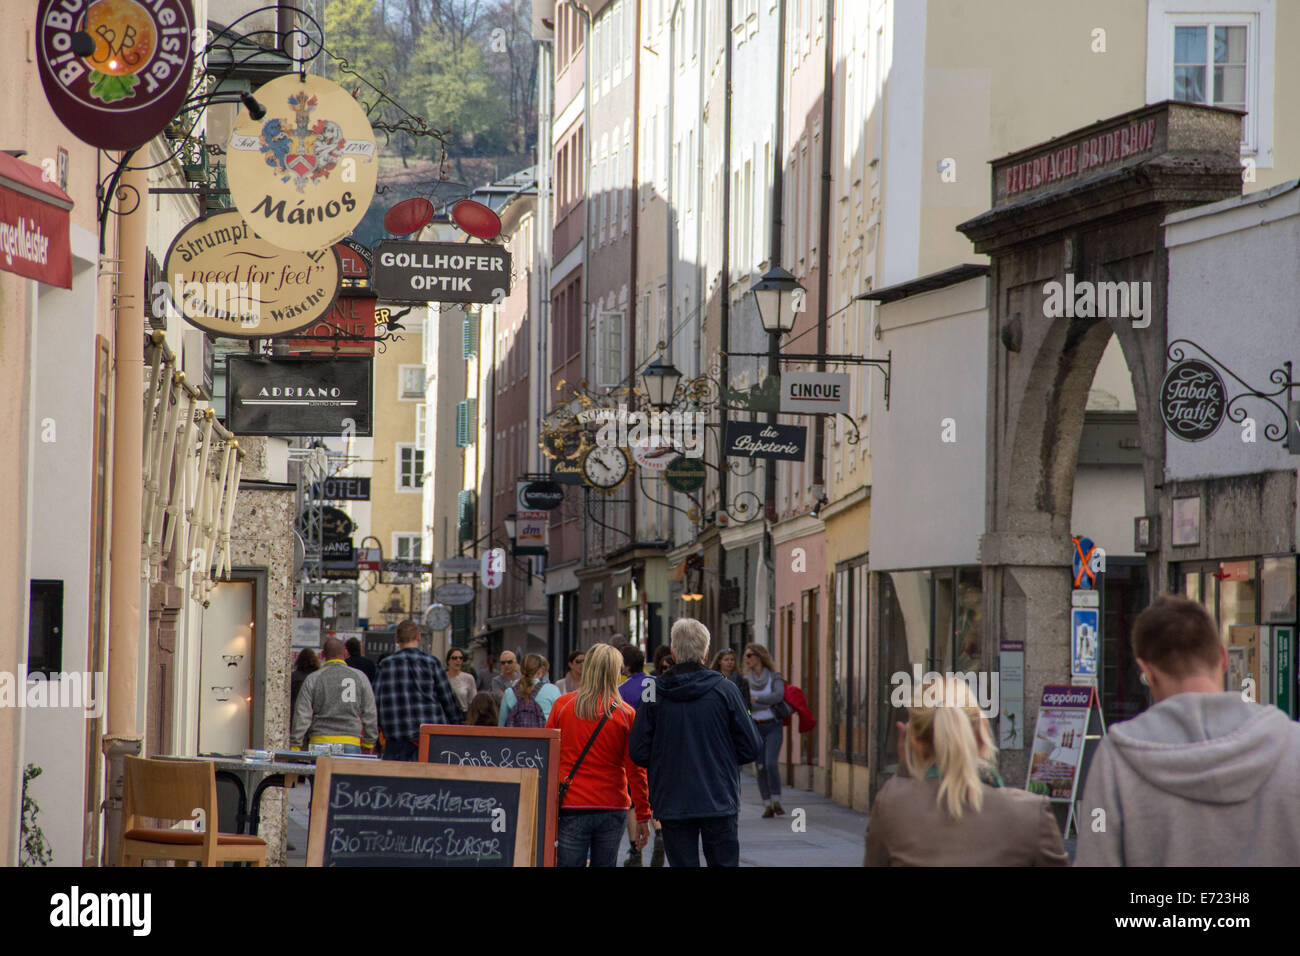 Austria: Getreidegasse, one of the oldest streets at the centre of Salzburg. Photo from 30 March 2014. Stock Photo